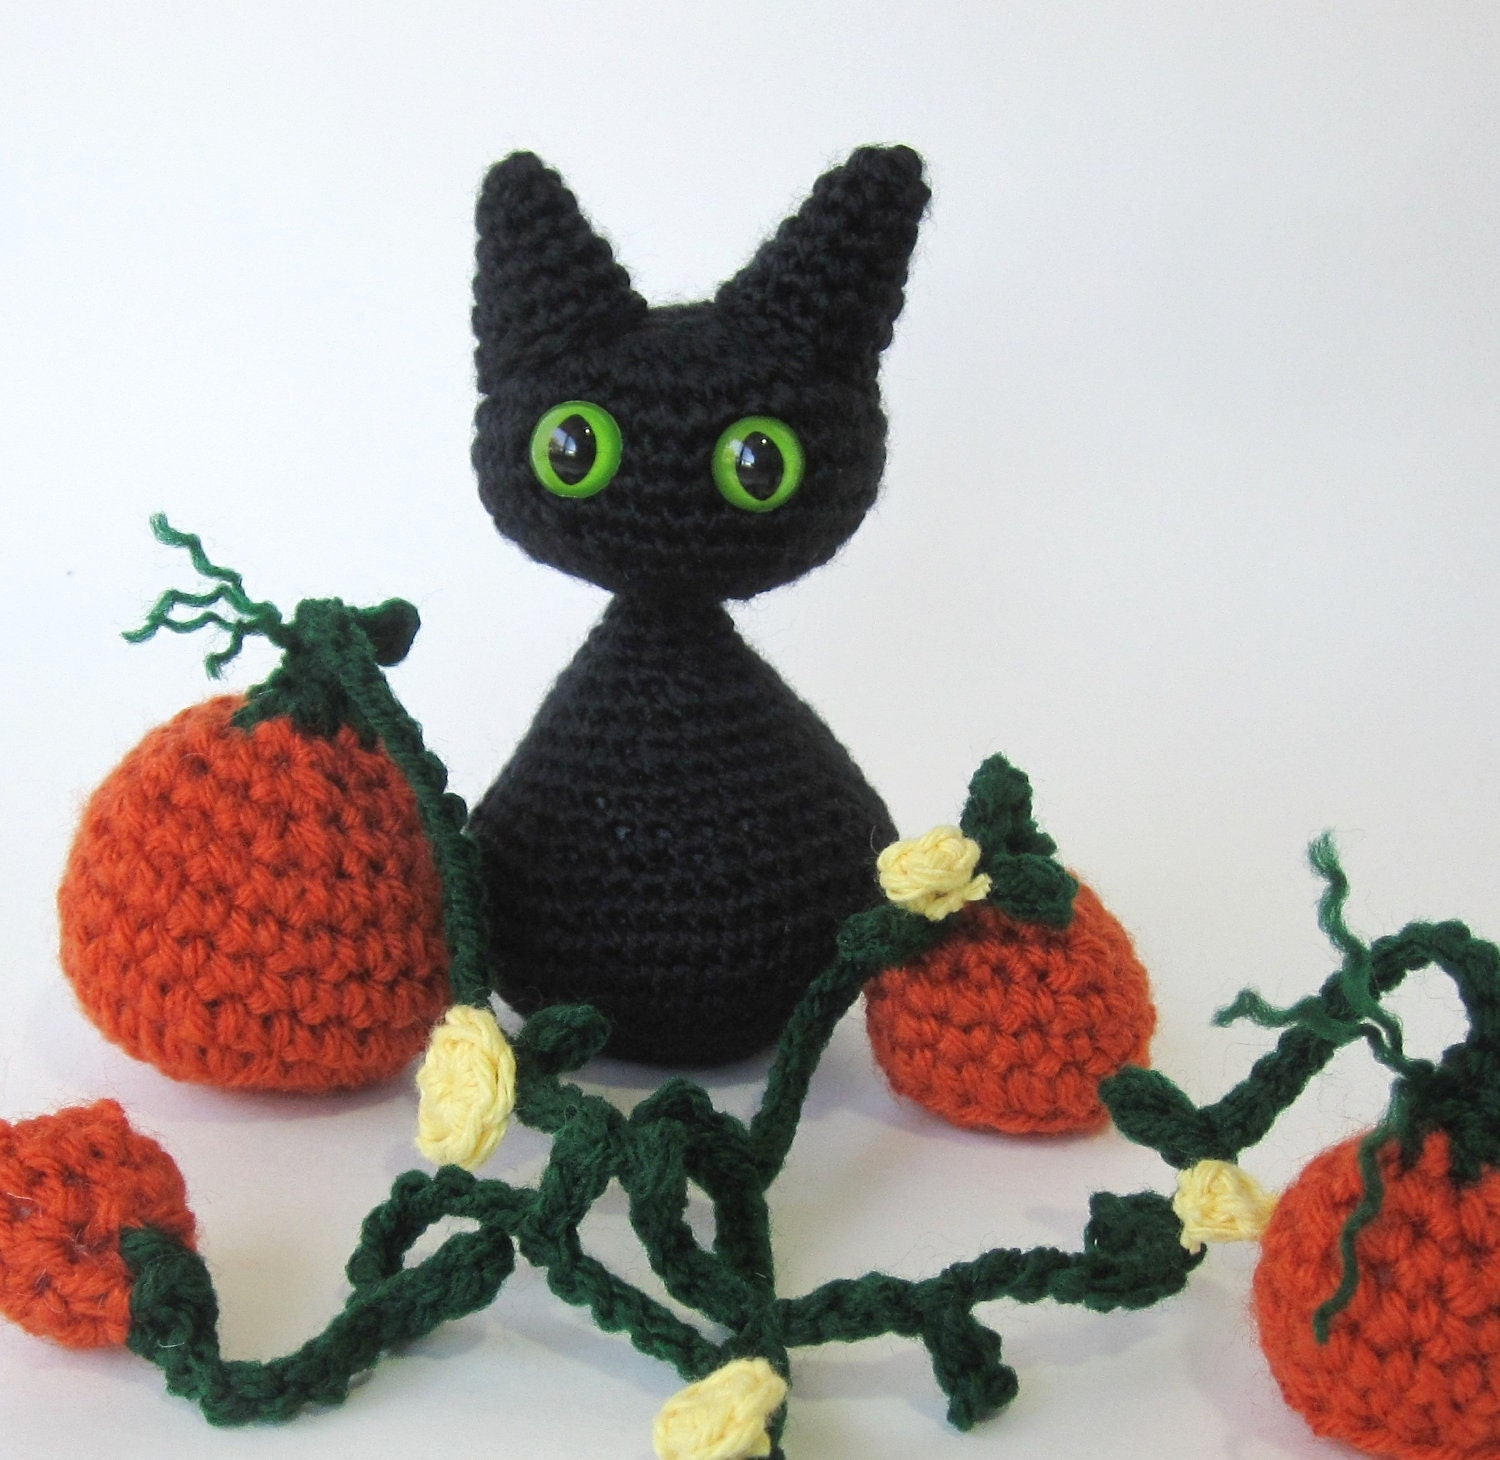 Halloween Crochet Pattern Cat Kitten Pumpkin Amigurumi w/